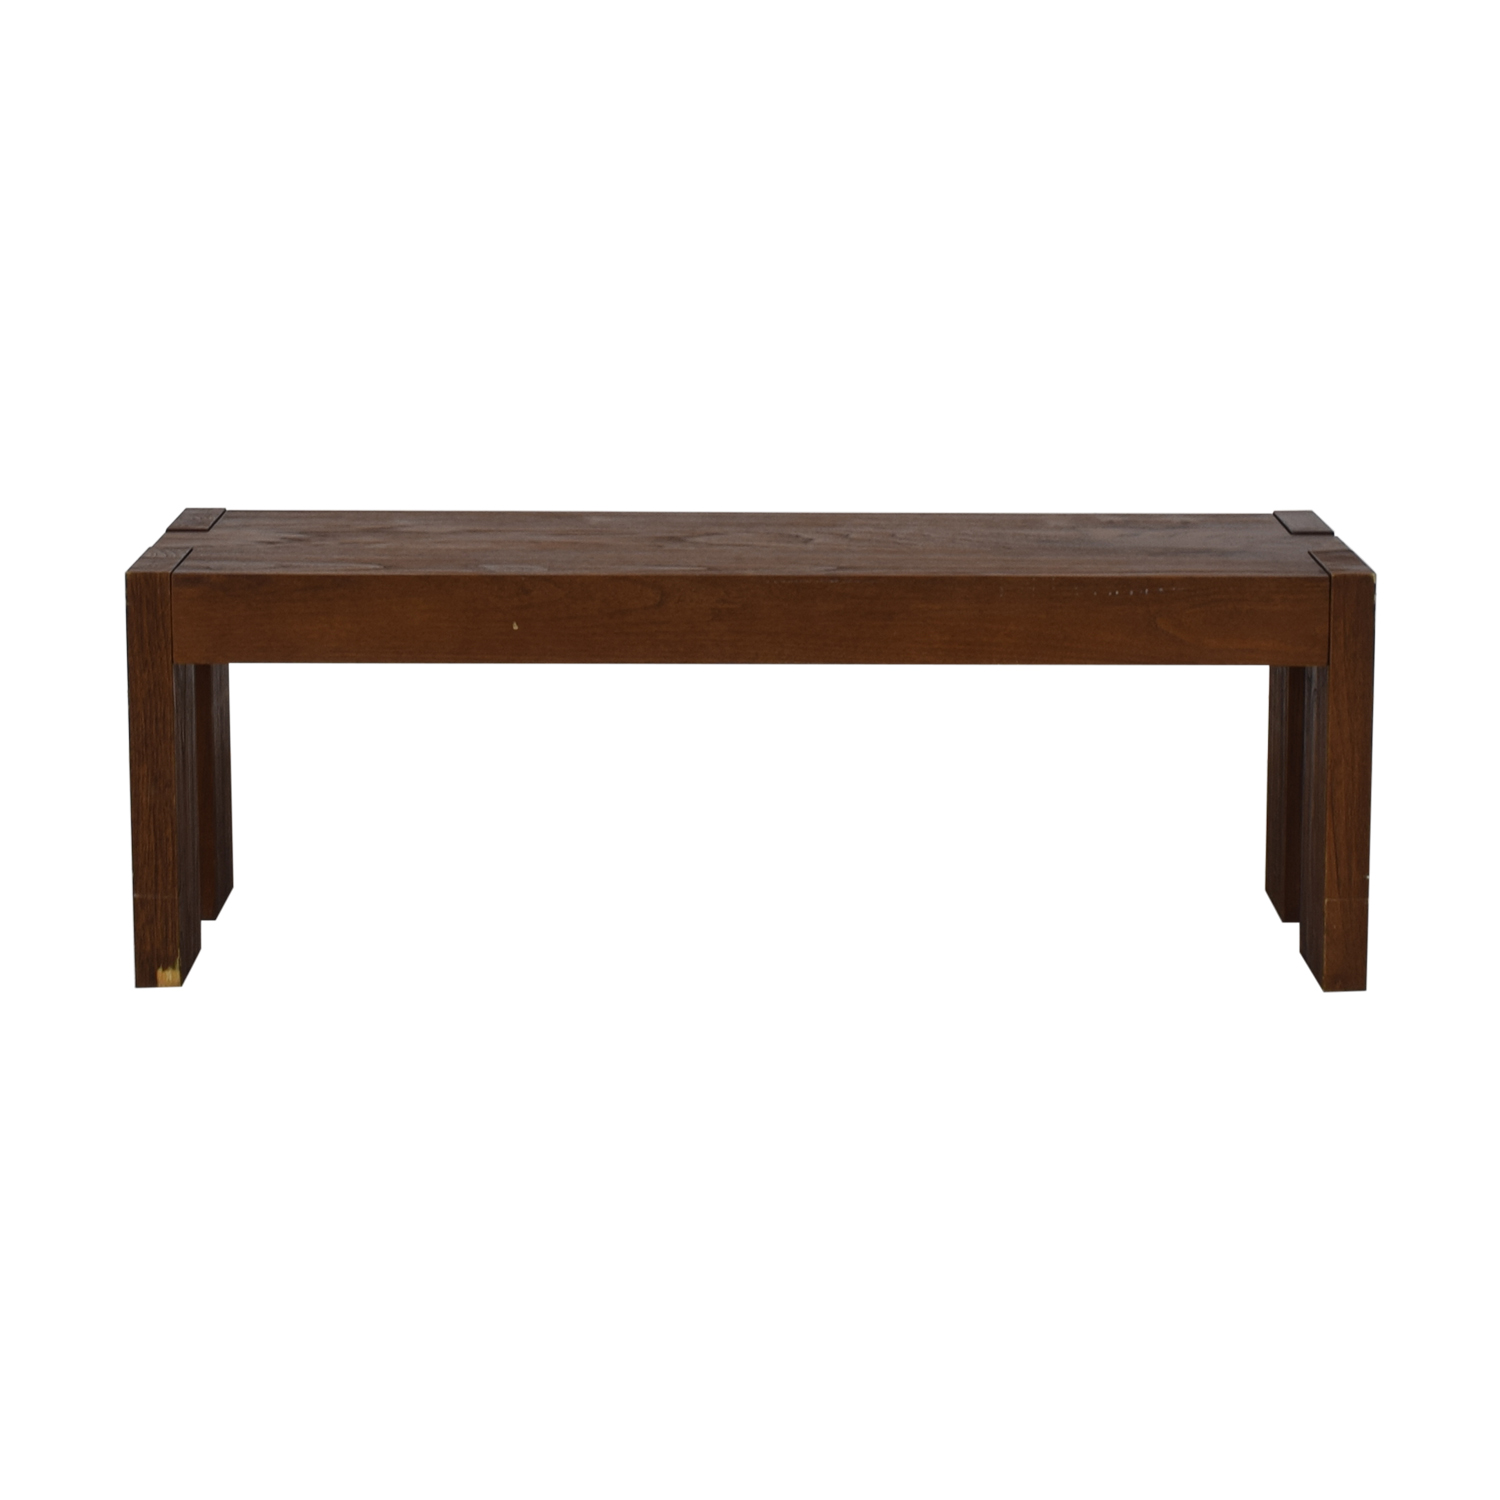 West Elm West Elm Wood Bench price